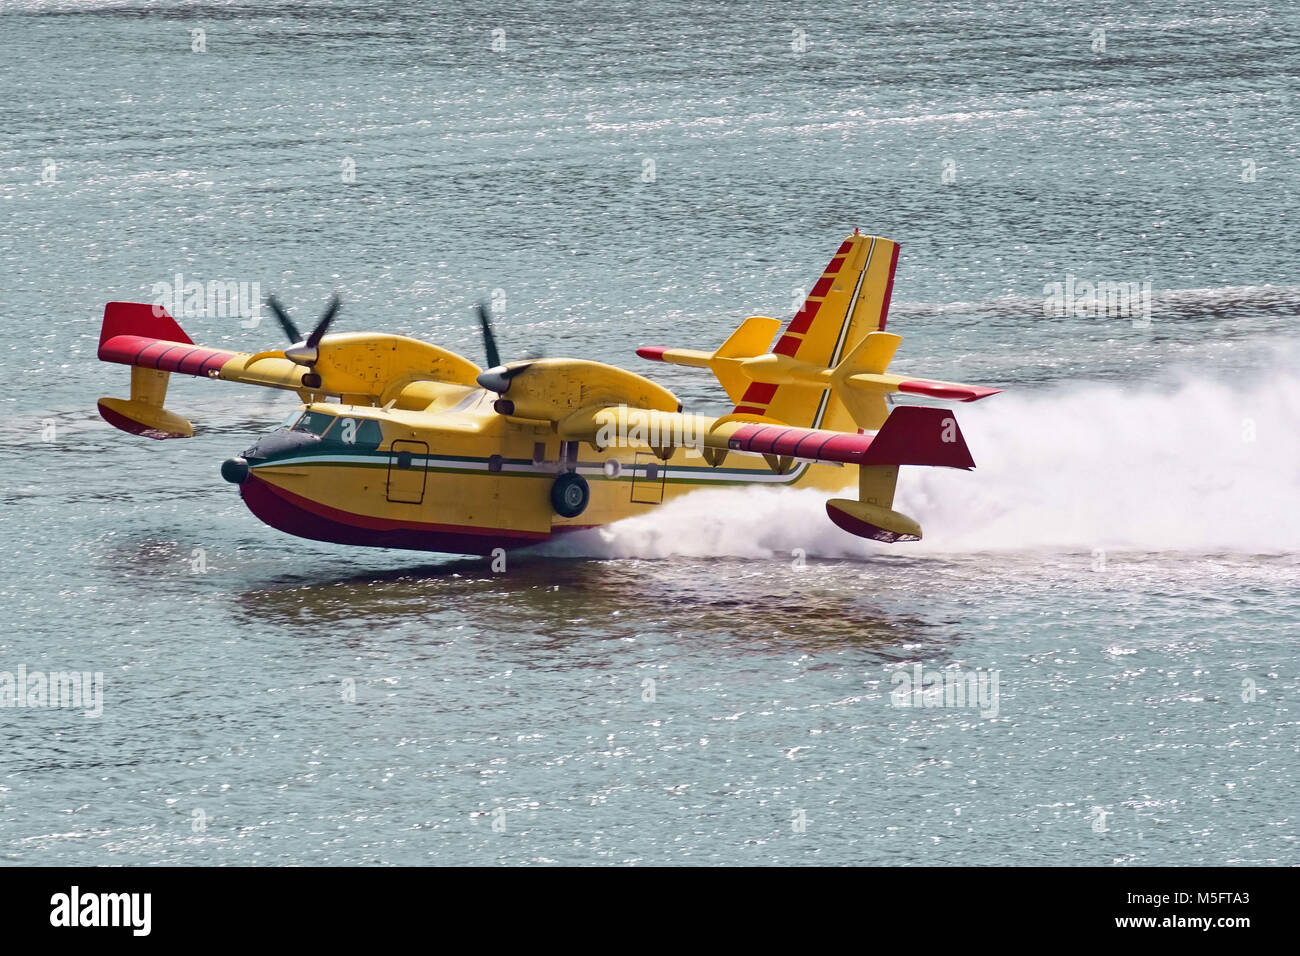 bombardier 415 while its water, canadair - Stock Image